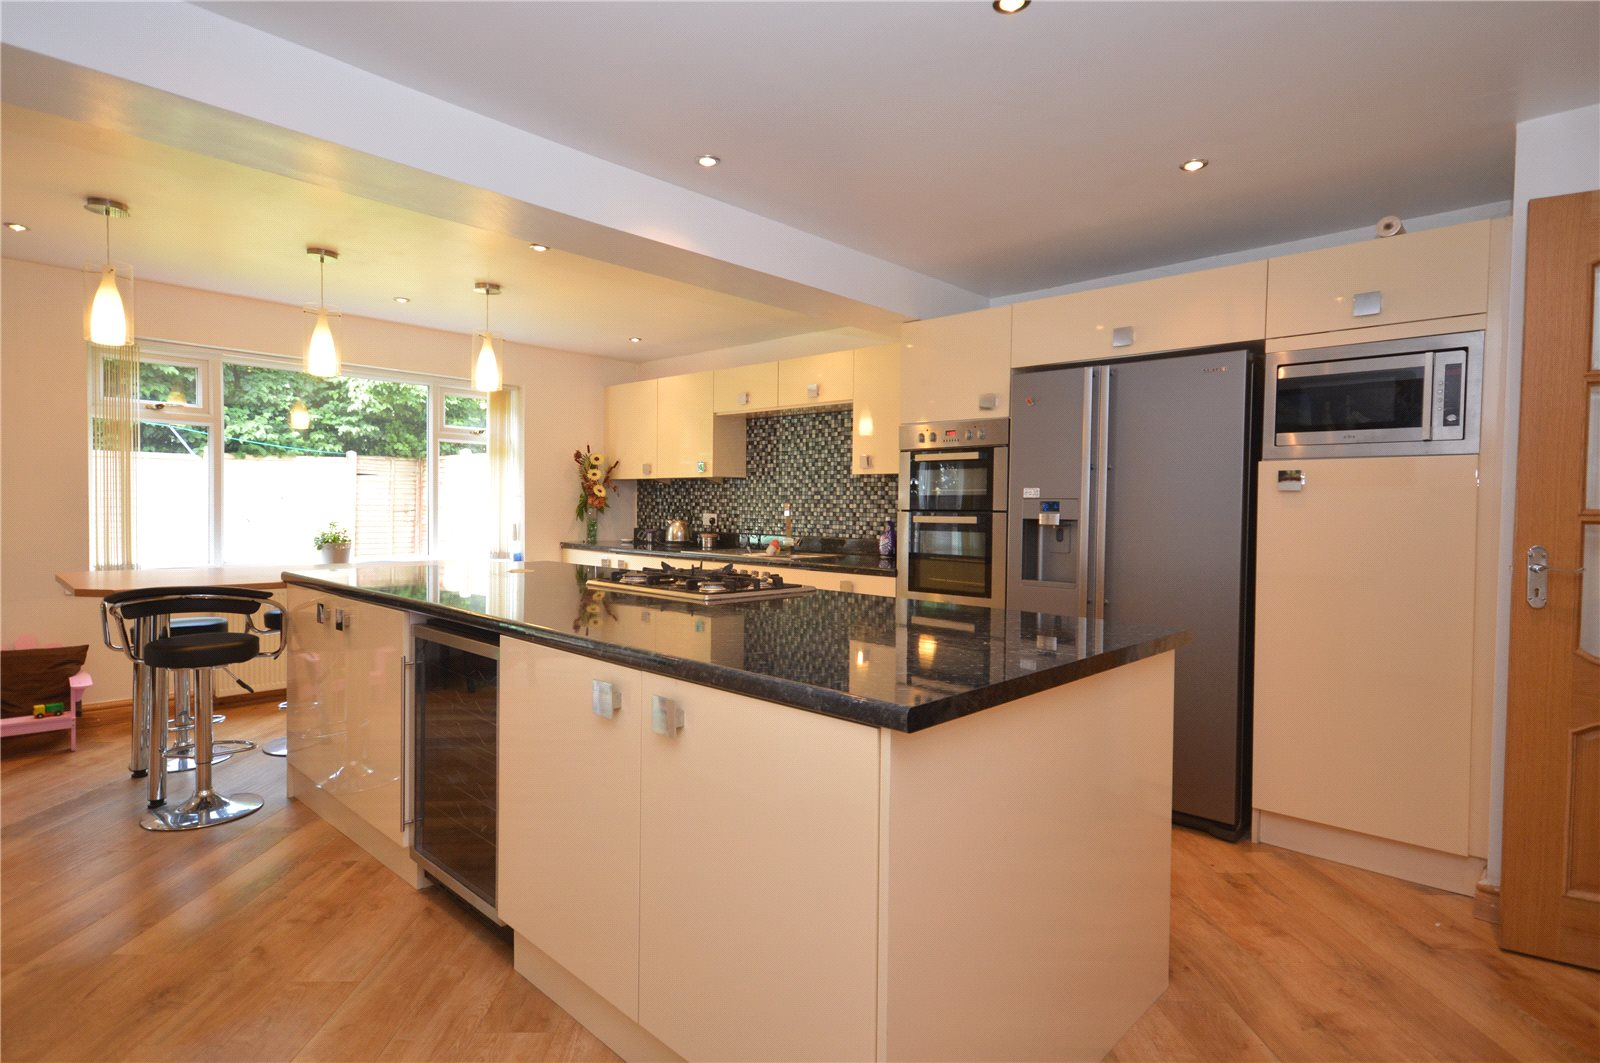 Property for sale in Morley, kitchen